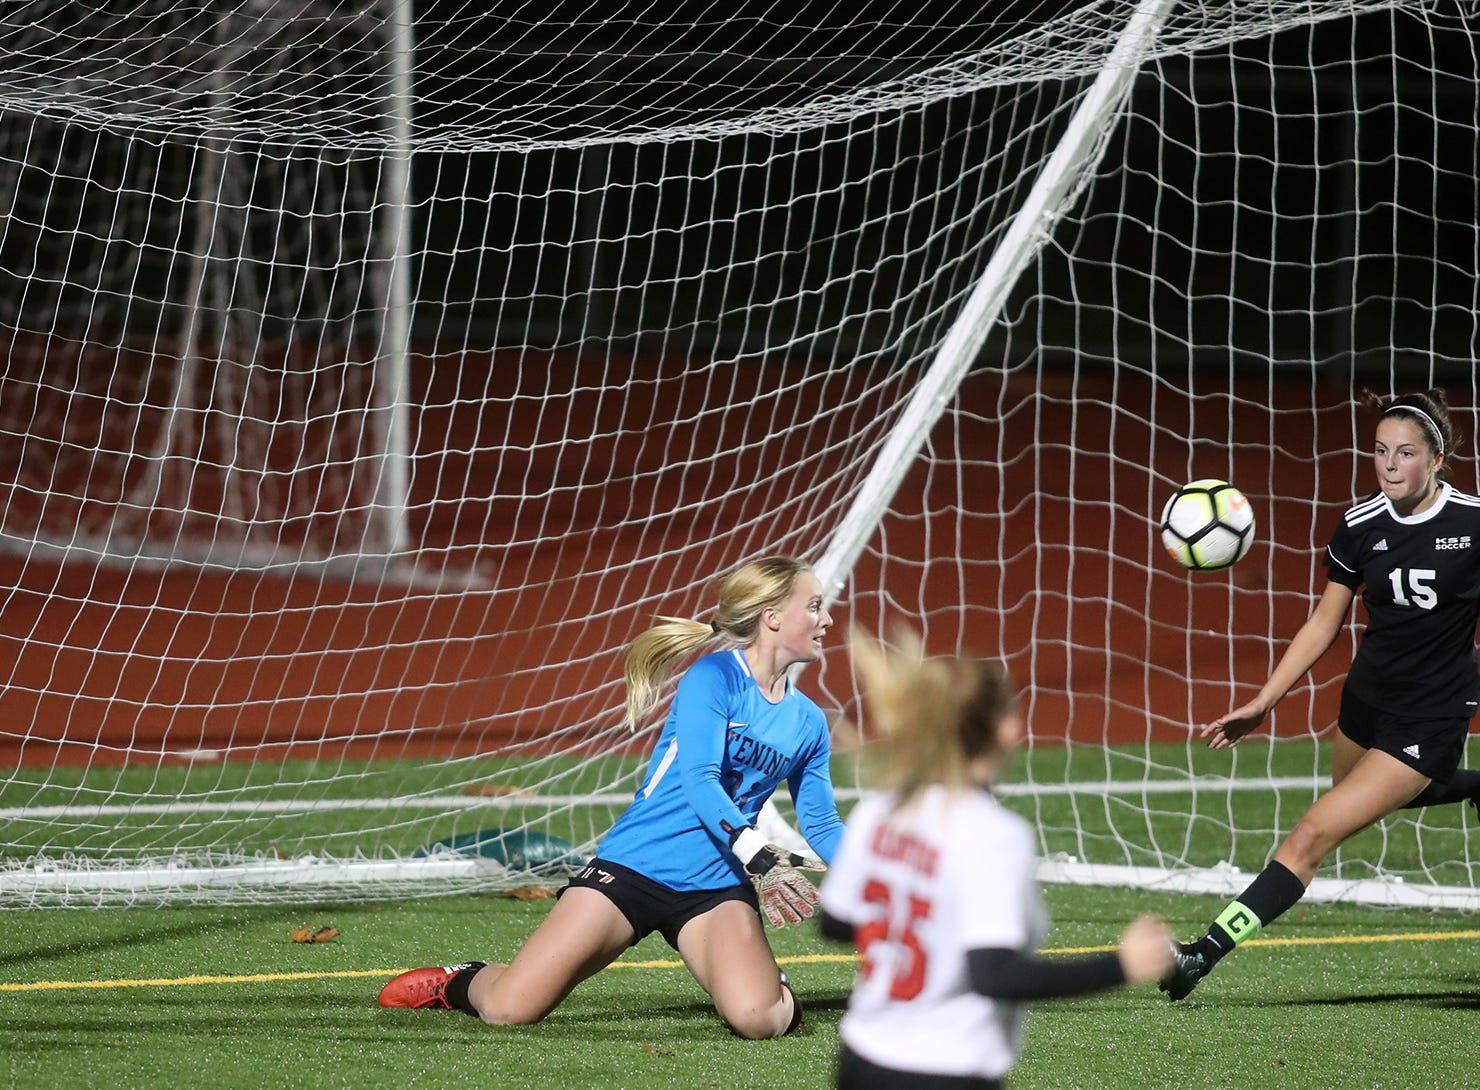 Klahowya defeated Tenino 7-0 in a state soccer game Tuesday, November 6, 2018 at Silverdale Stadium.